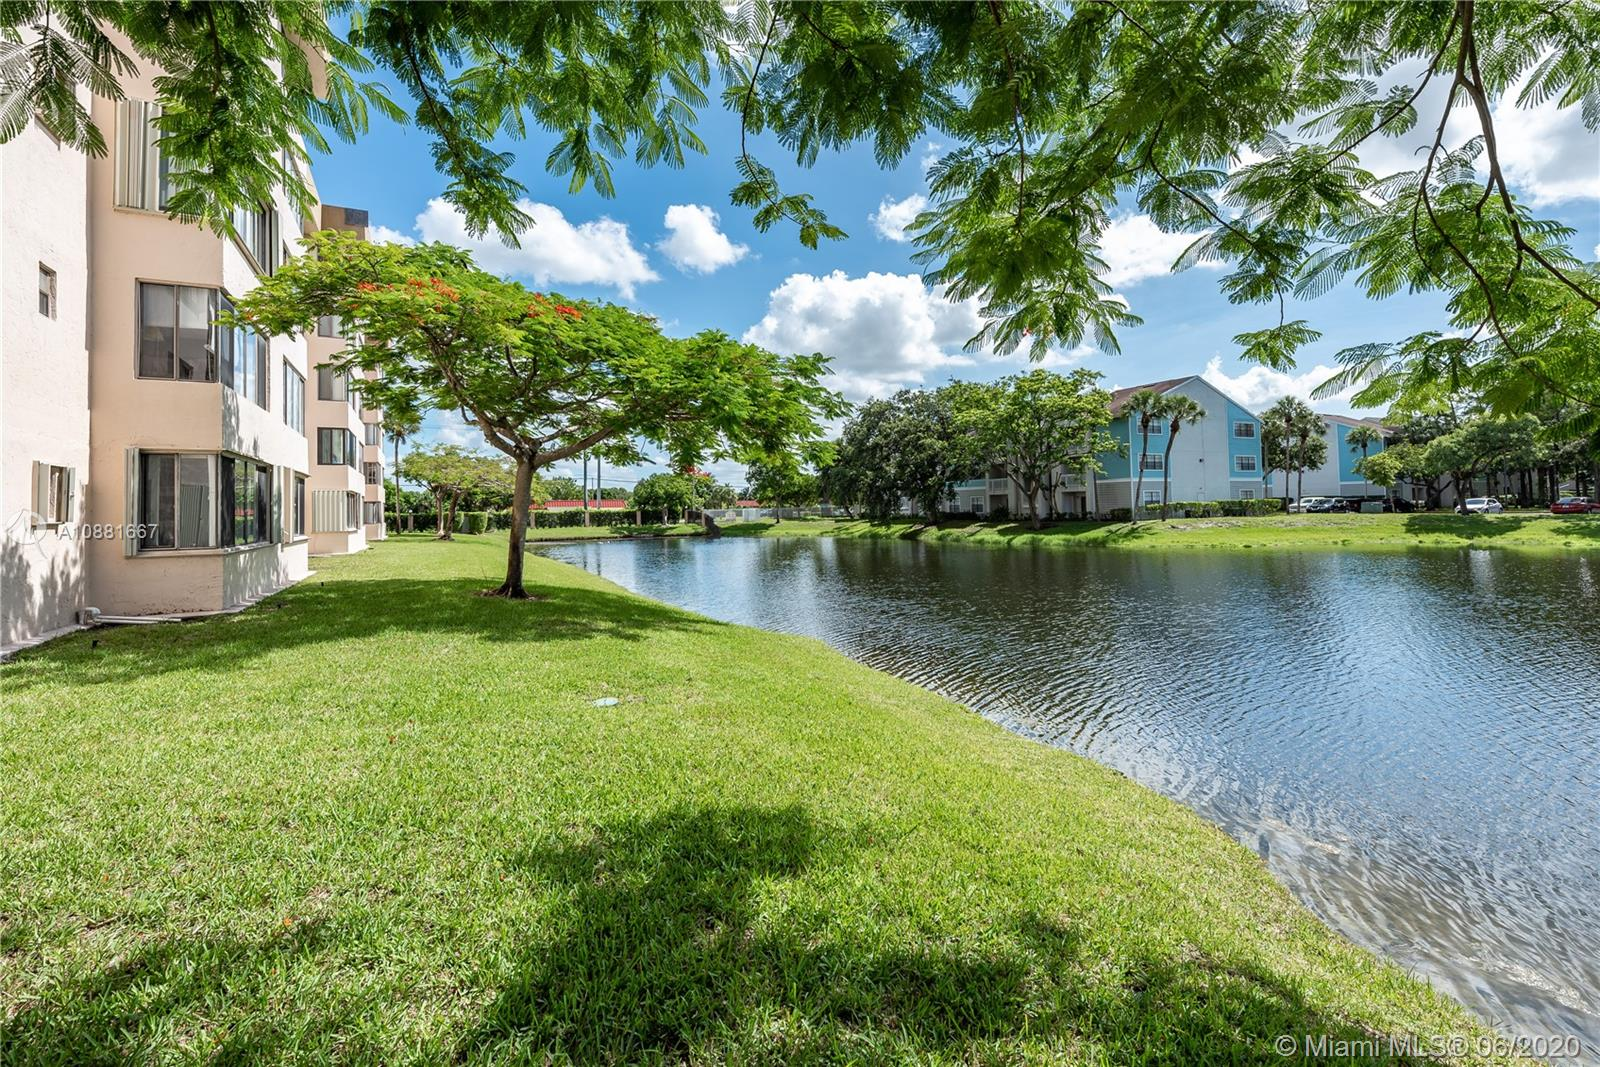 Enjoy tranquil lake views from this bright and spacious remodeled condo!  Updated Kitchen with granite counter tops and stainless steel appliances.  Updated bathrooms and a HUGE laundry room. Unit has walk-in closets and tile floor throughout.  Located on the 3rd Floor Unit is close to the Elevator and Stairwell.  A resort-style setting with two pools which one is heated and a garden area to relax.  Break a sweat on the tennis courts or in the gym which are just part of this resort-style living.  Park and recreational areas are just 5 minutes away.